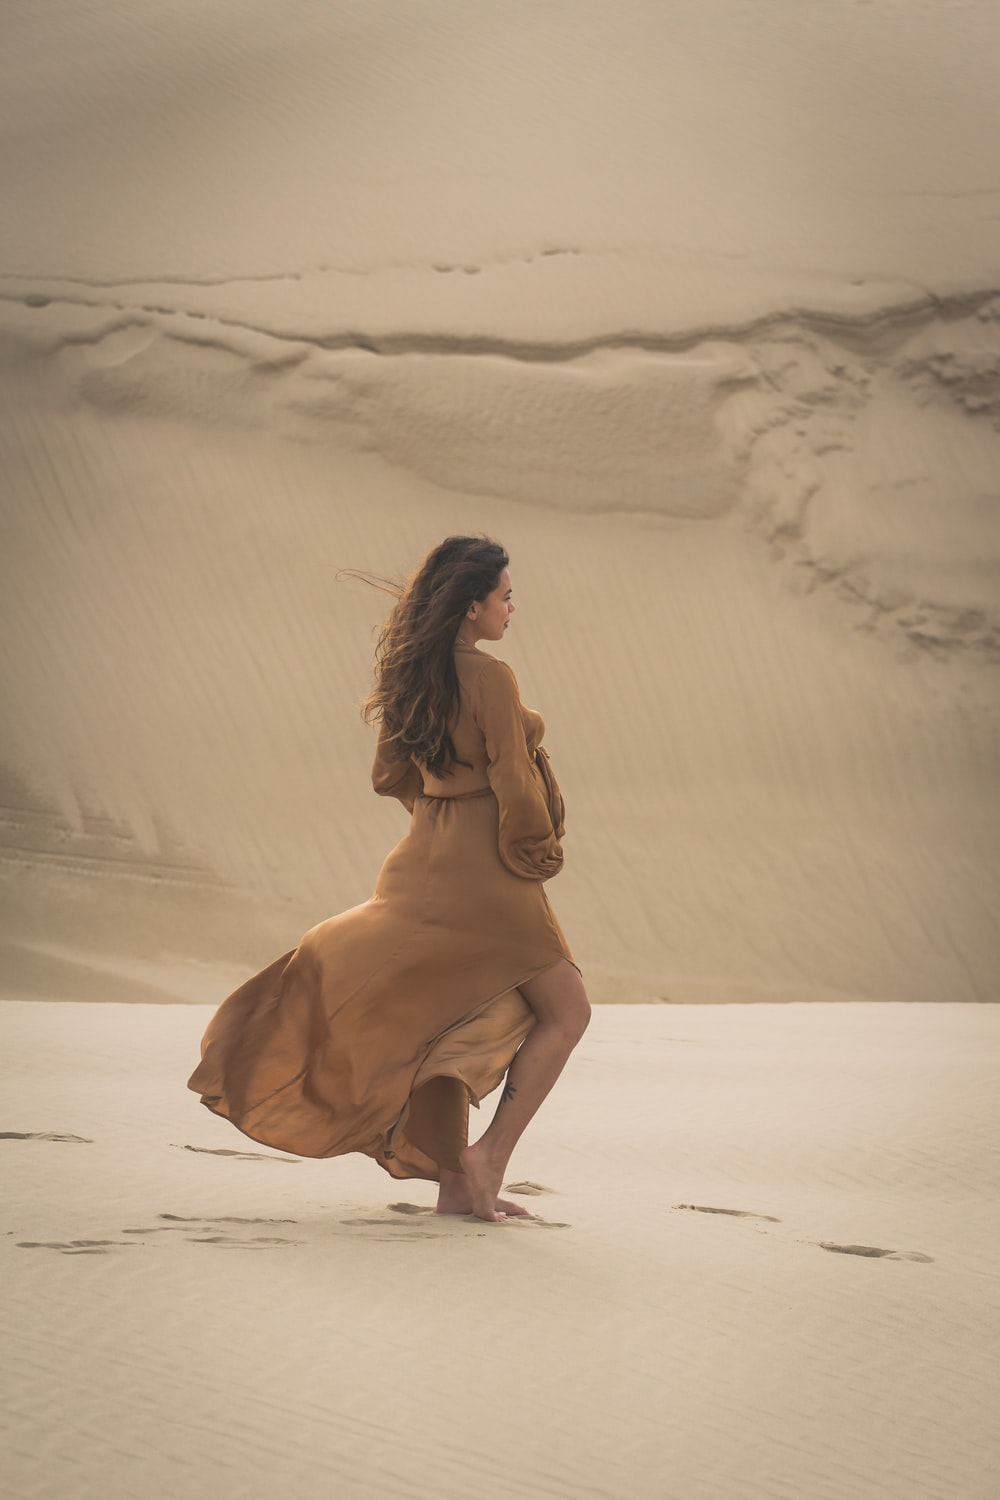 woman walking on sand during day